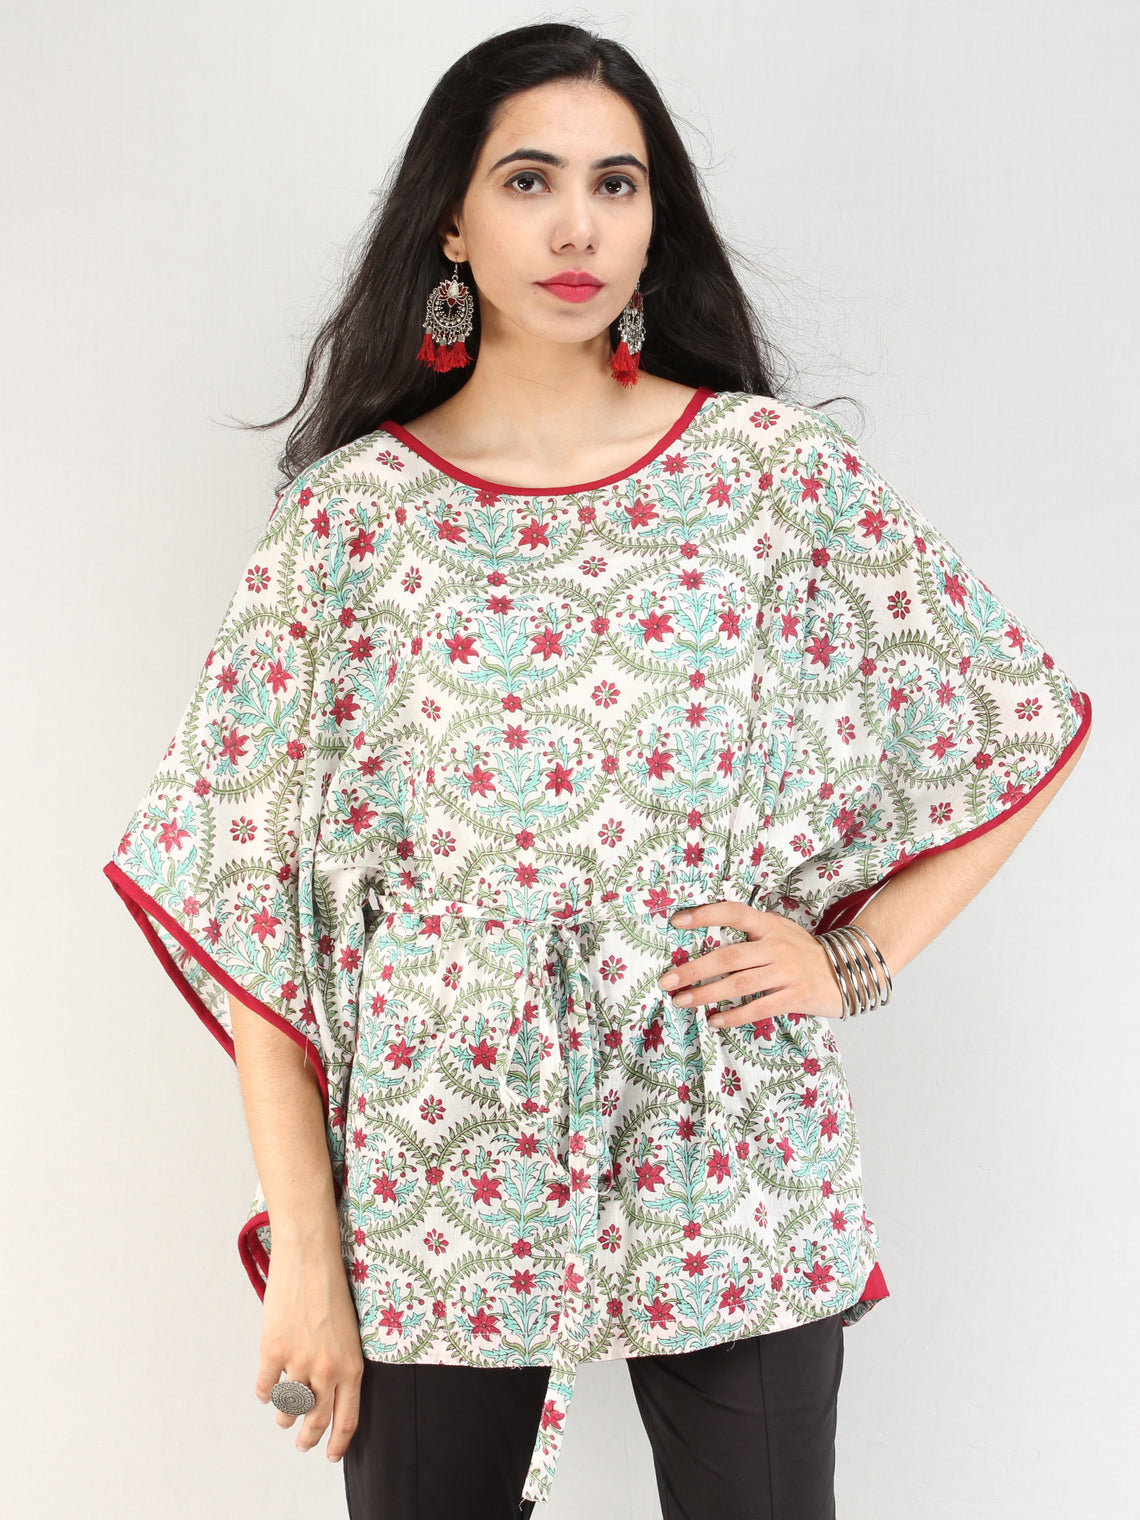 Rangrez Gulrukh - Kaftan Cotton Top - T72F2166